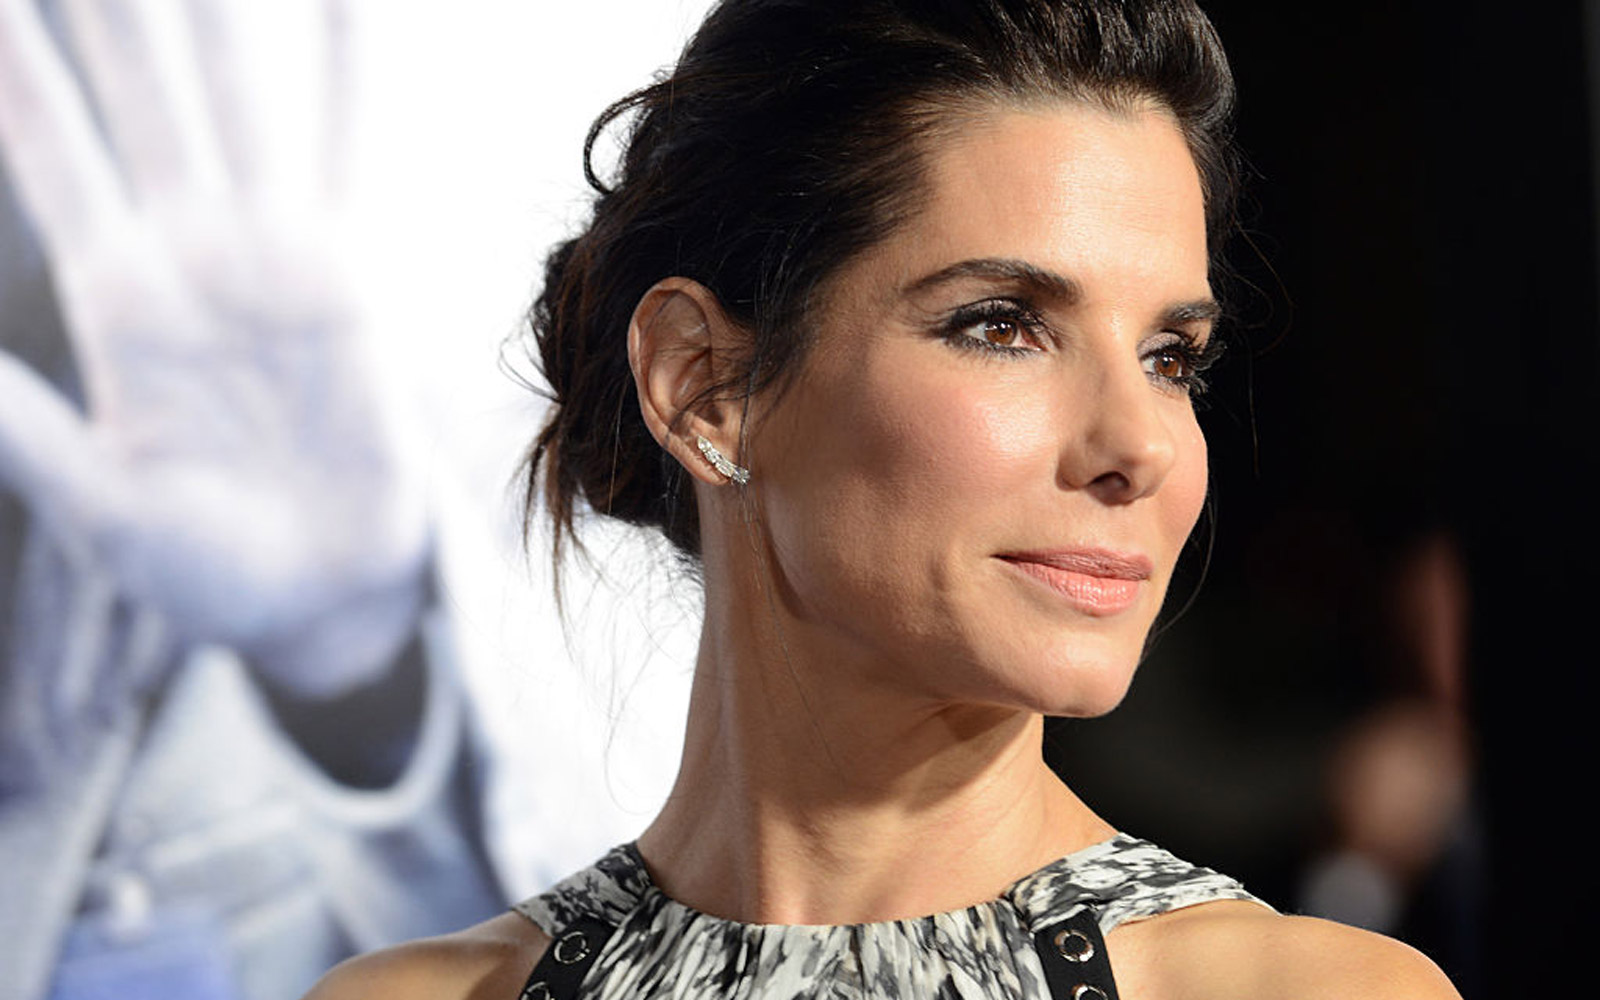 Sandra Bullock Is Donating $1 Million to Help the Hurricane Relief Effort